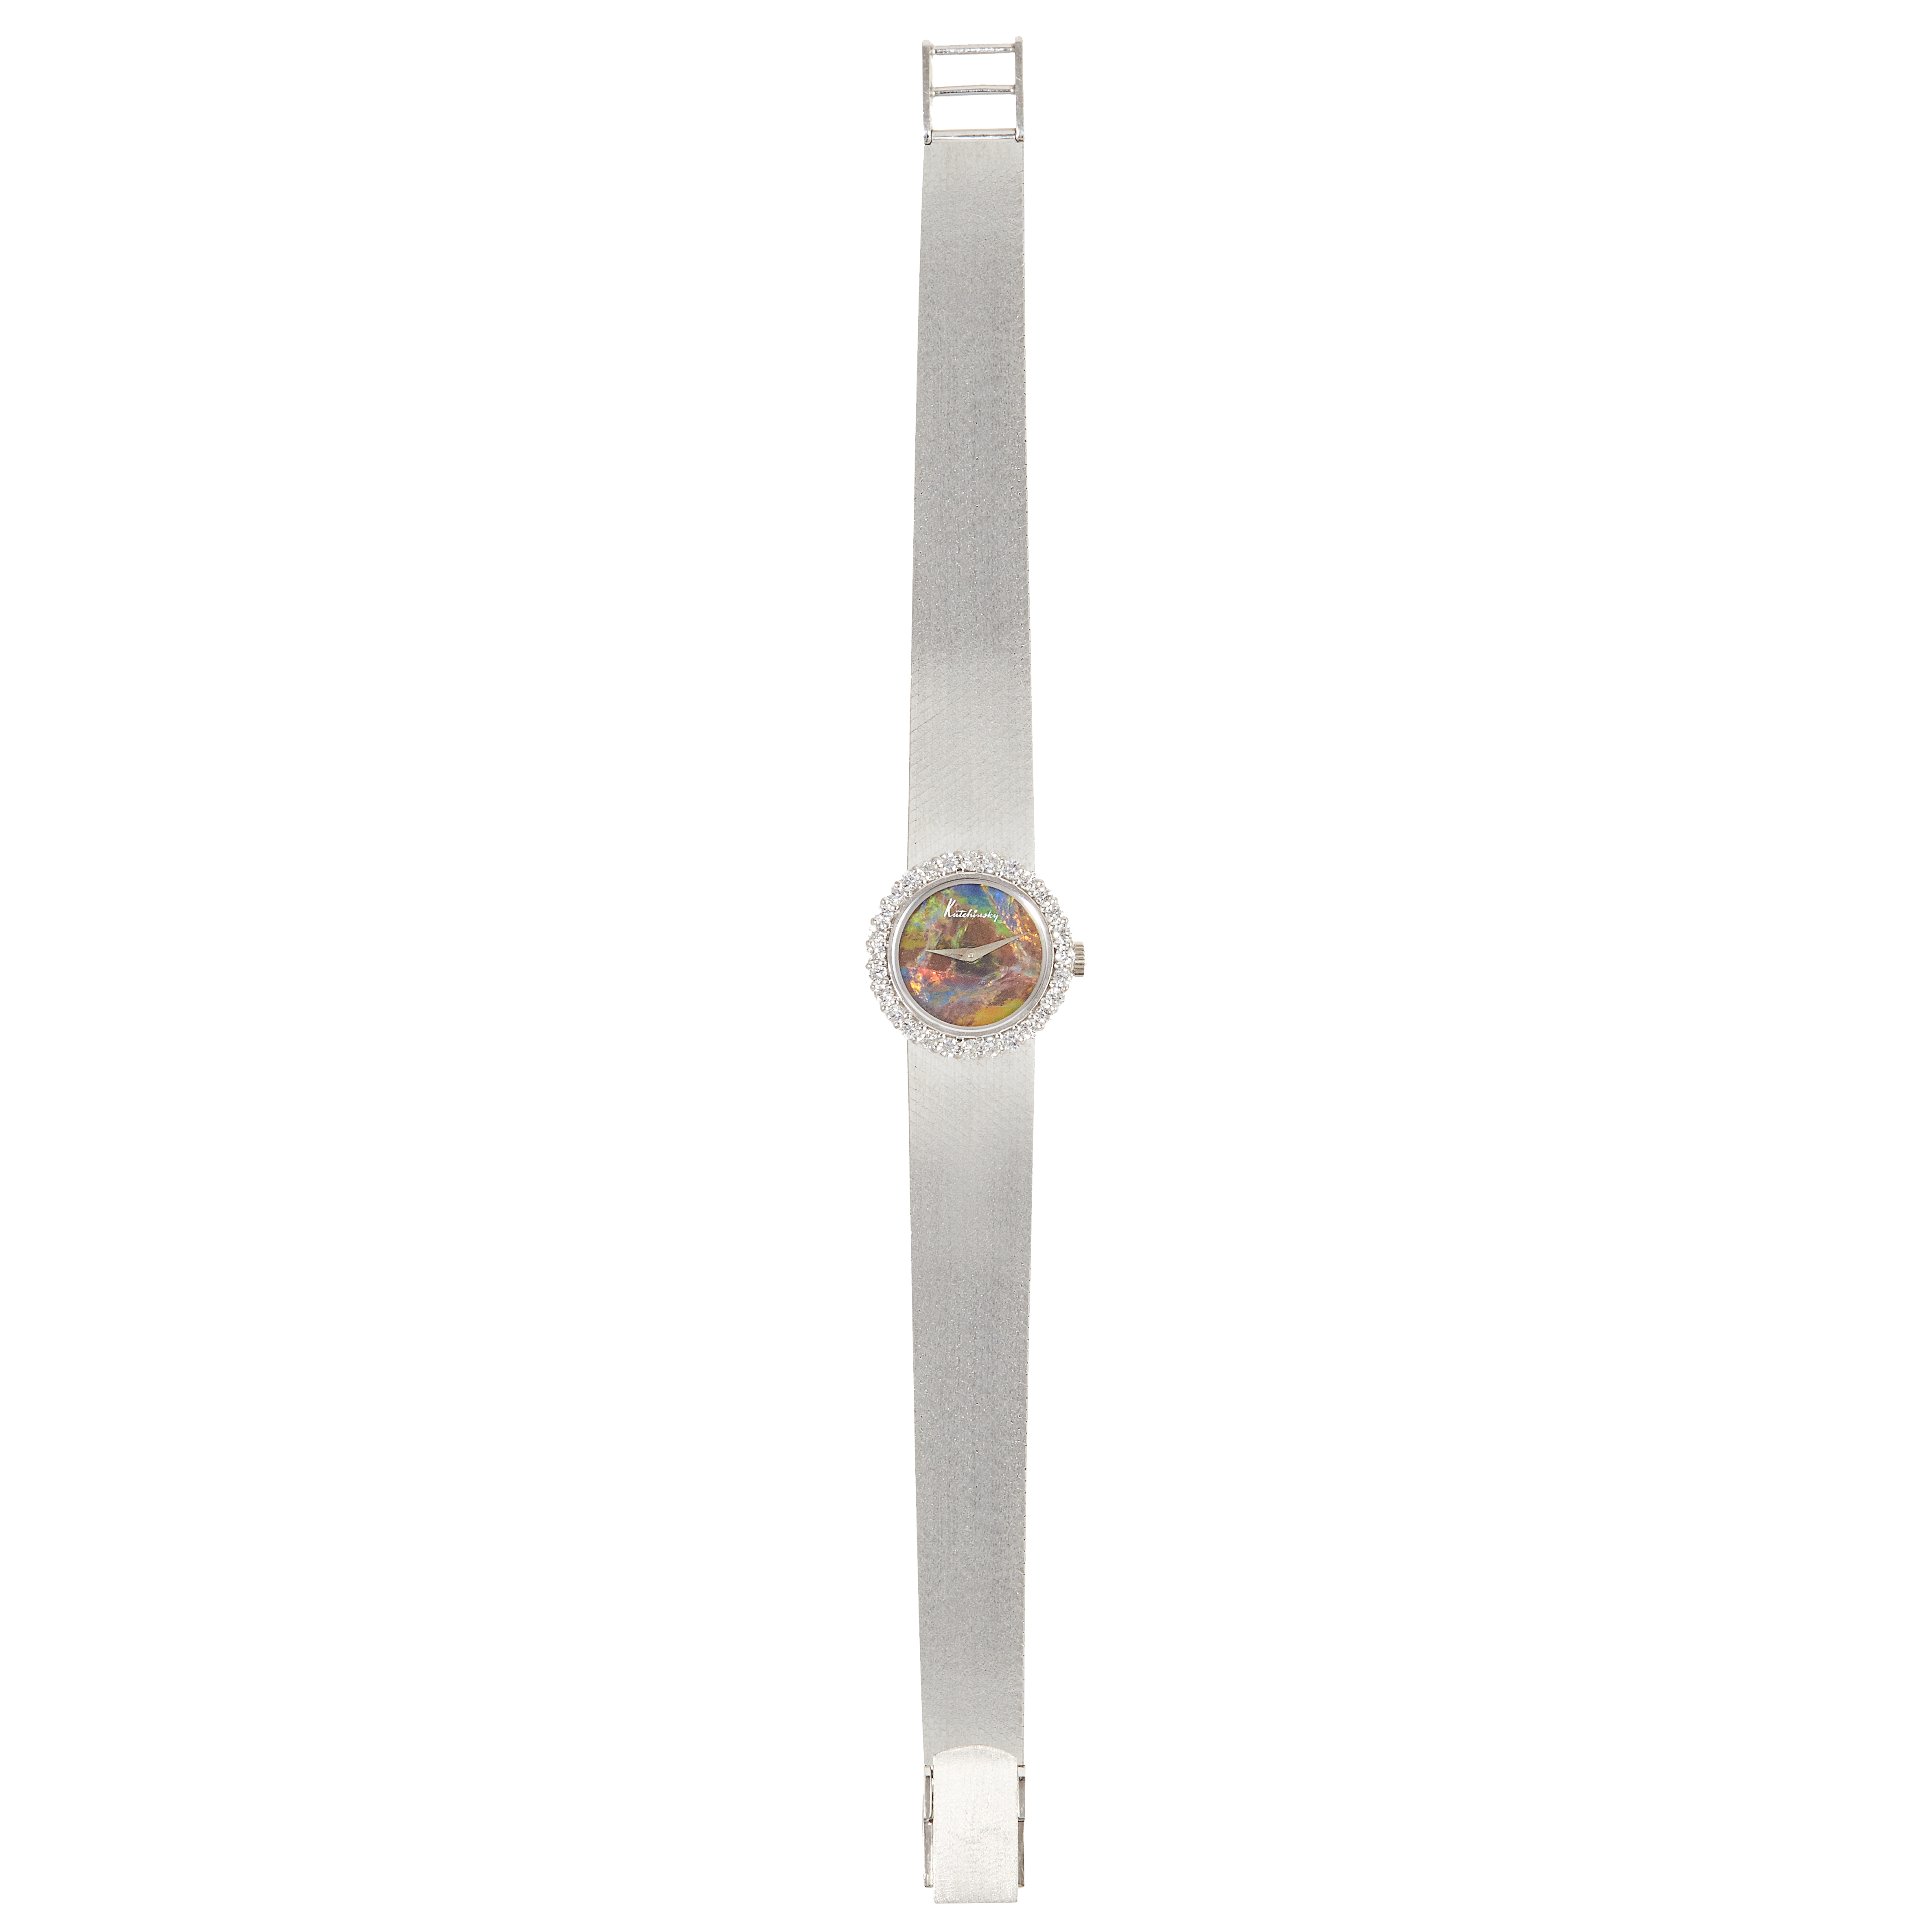 Los 76 - A VINTAGE BLACK OPAL AND DIAMOND COCKTAIL WATCH, KUTCHINSKY, CIRCA 1971 in 18ct white gold, with